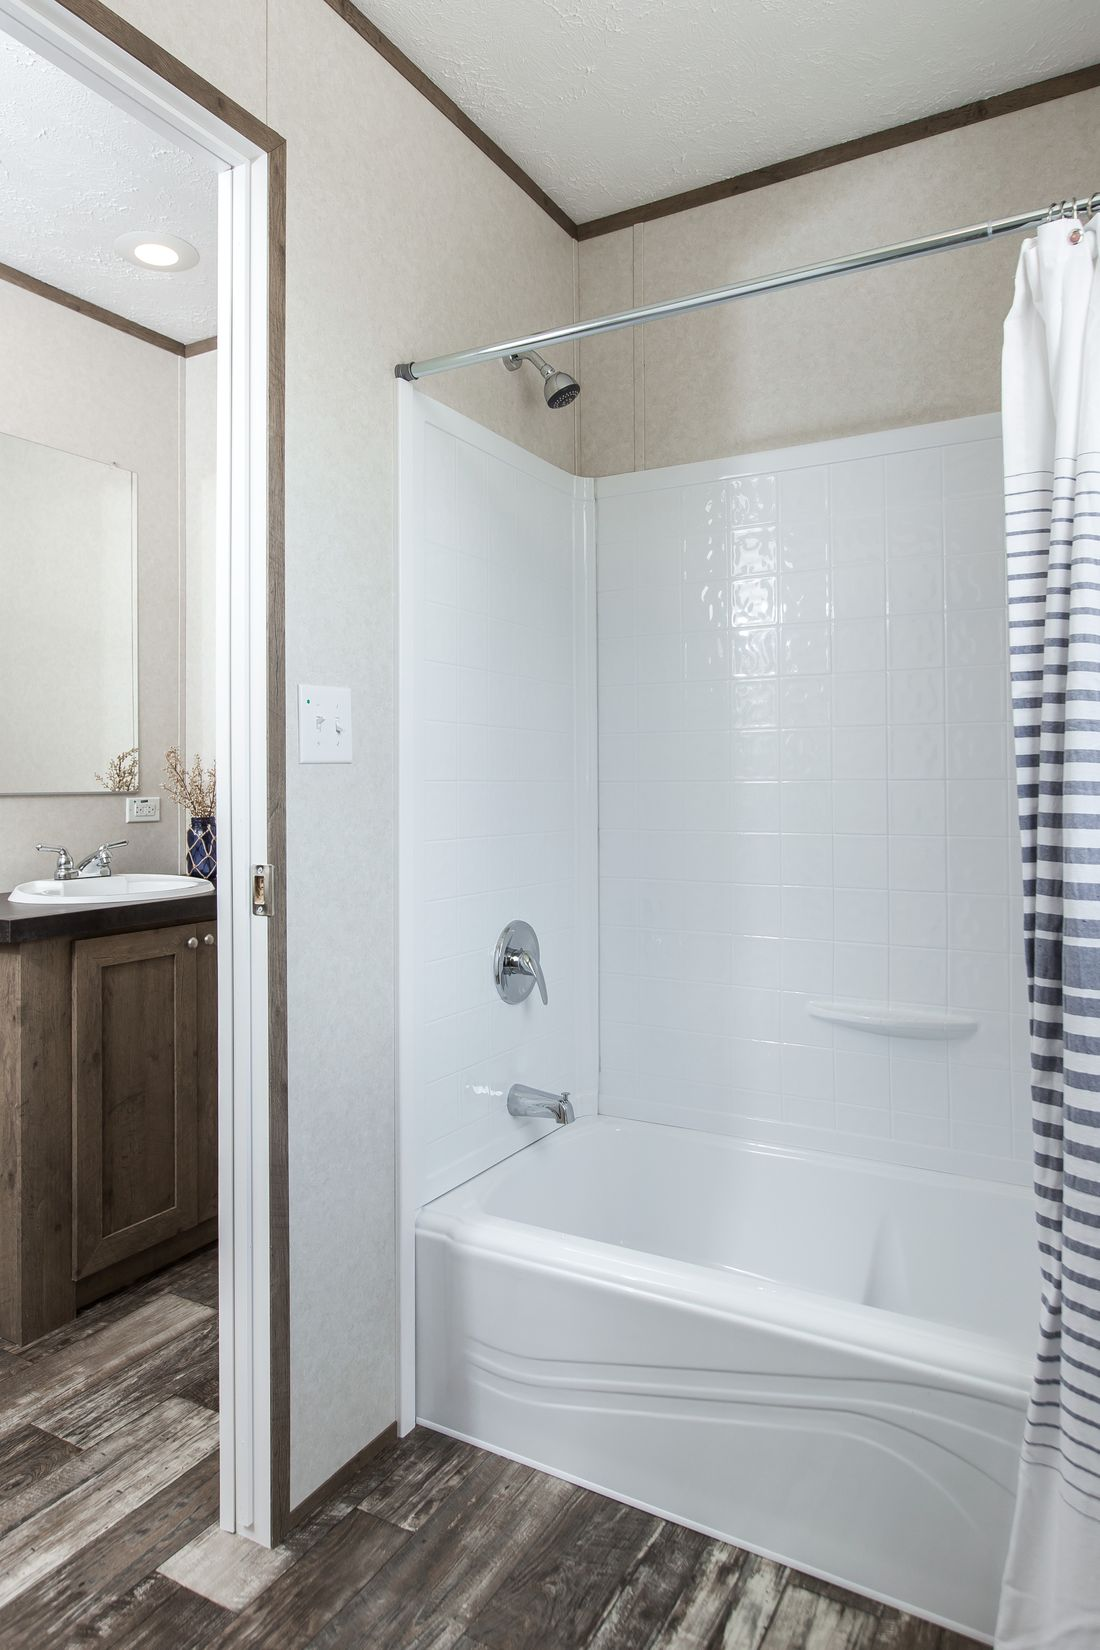 The THE BREEZE II Guest Bathroom. This Manufactured Mobile Home features 4 bedrooms and 2 baths.